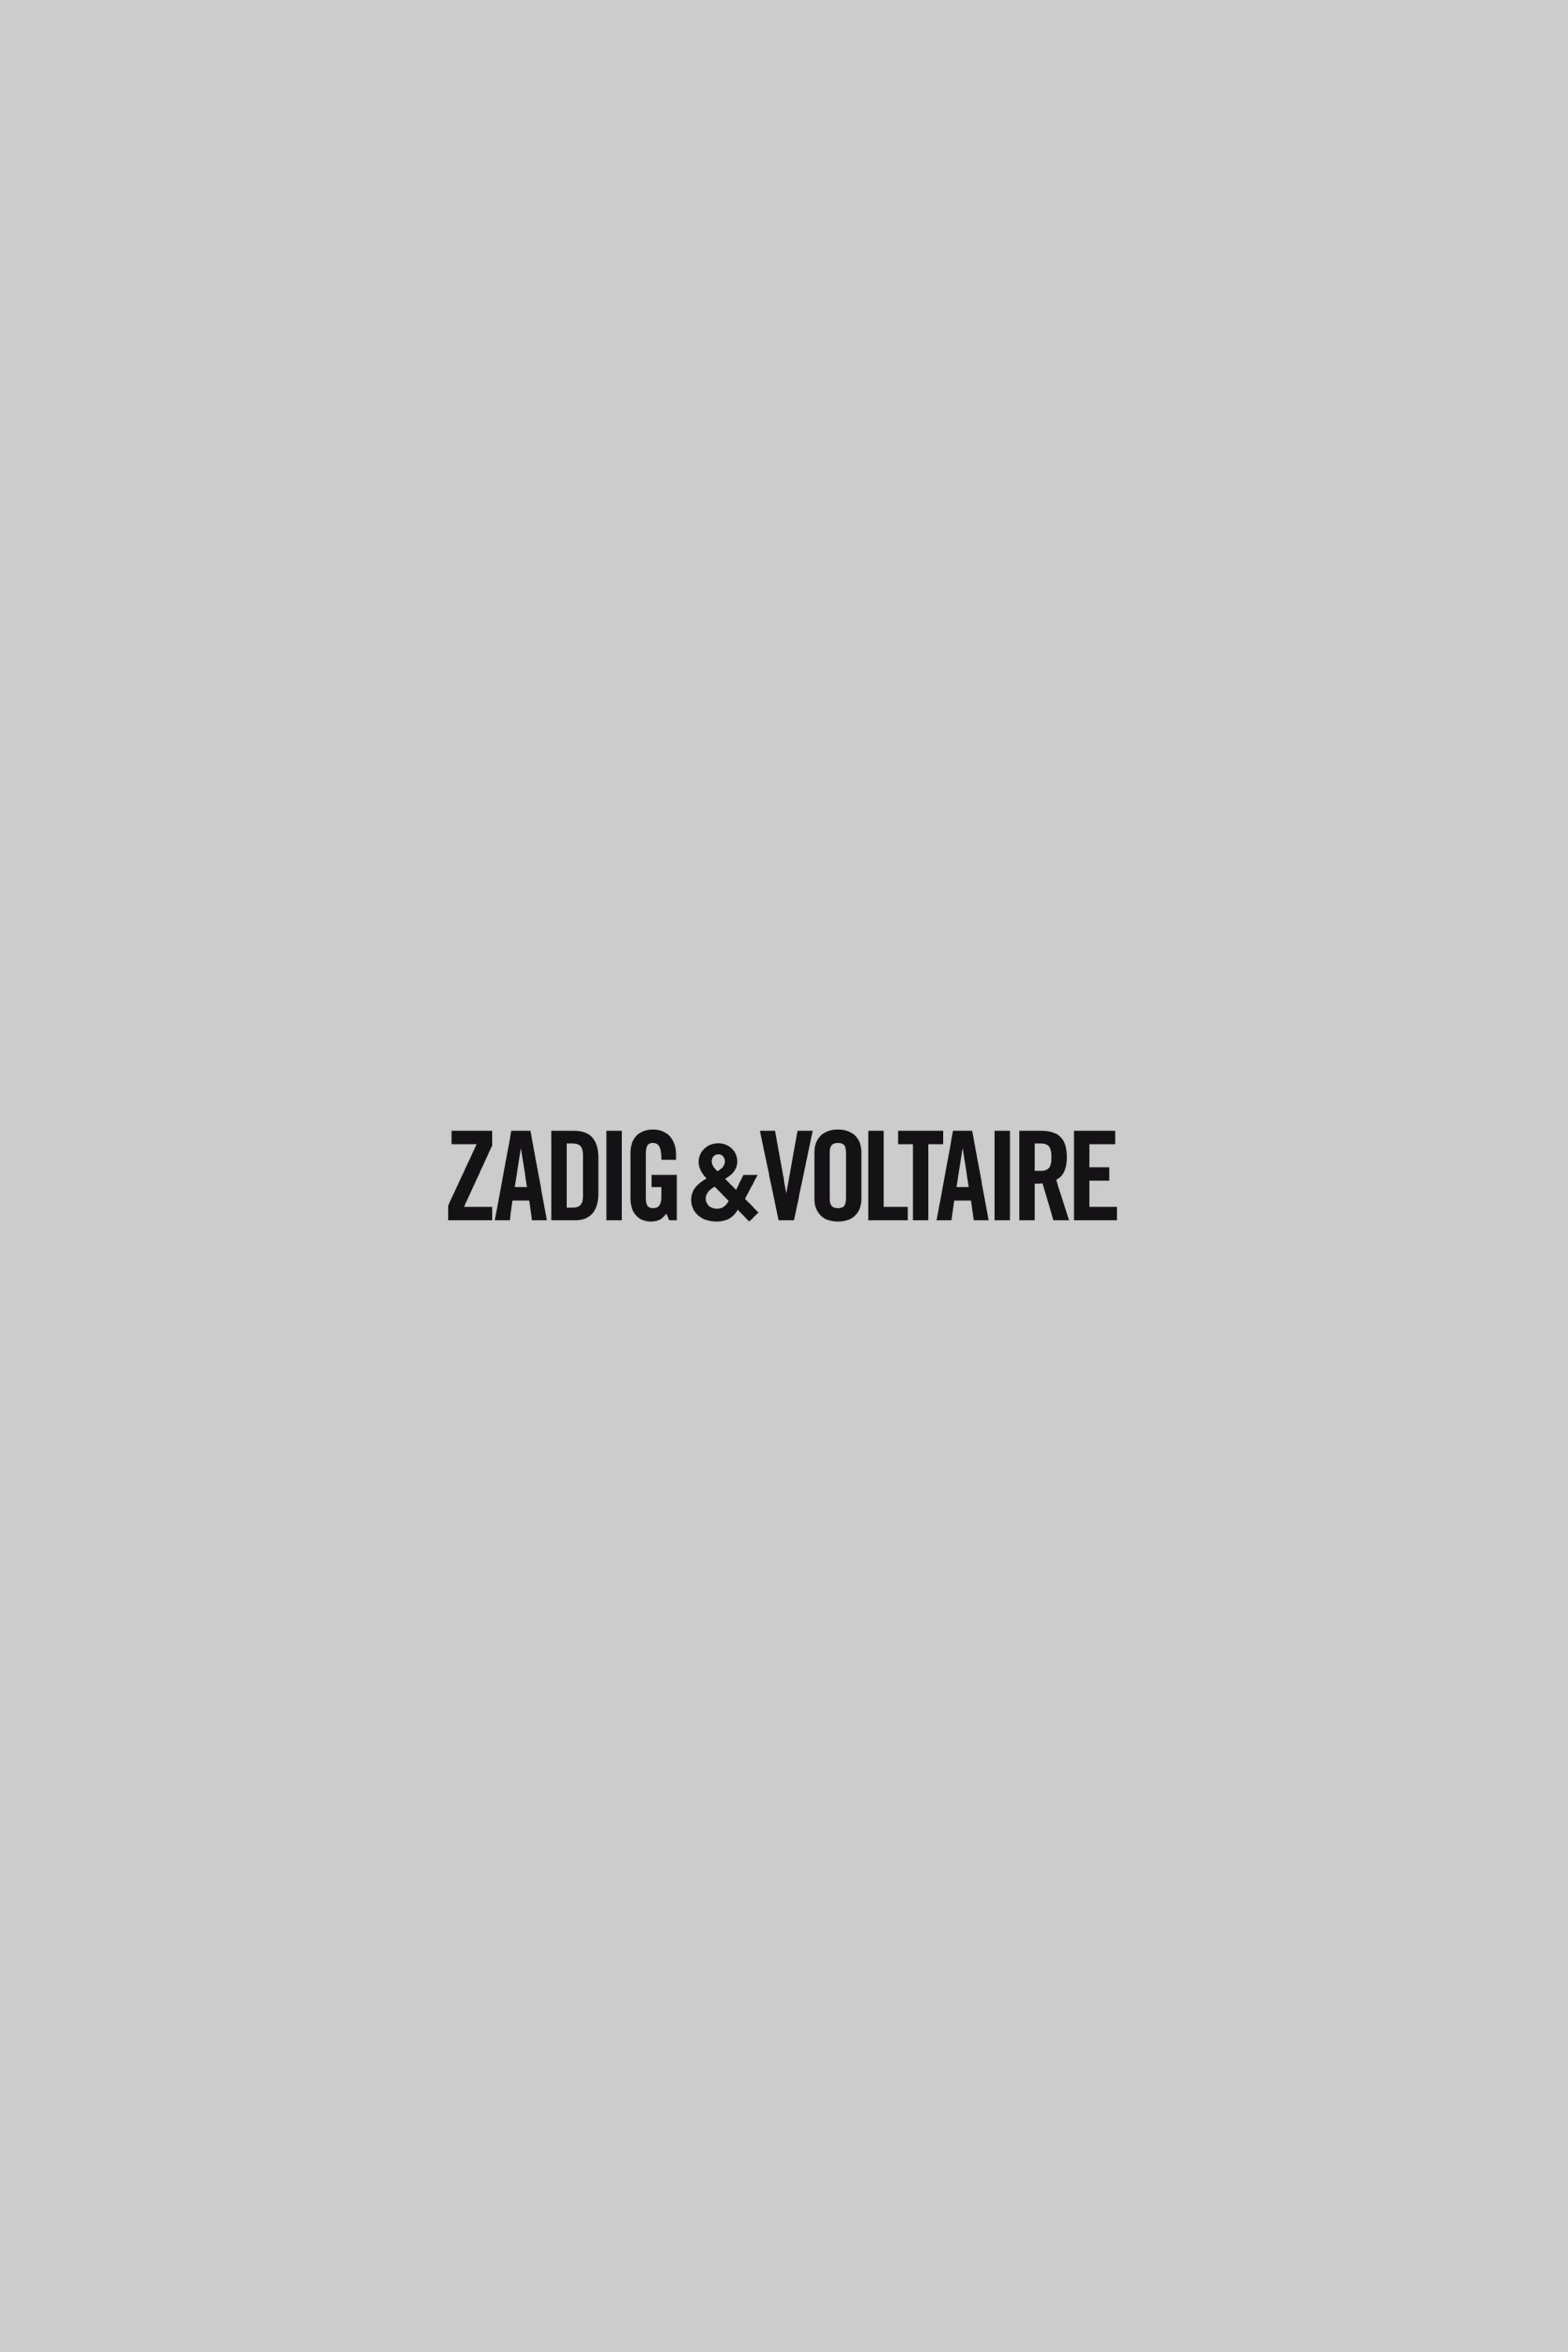 Connu bag for woman midnight blue Zadig&Voltaire YN37